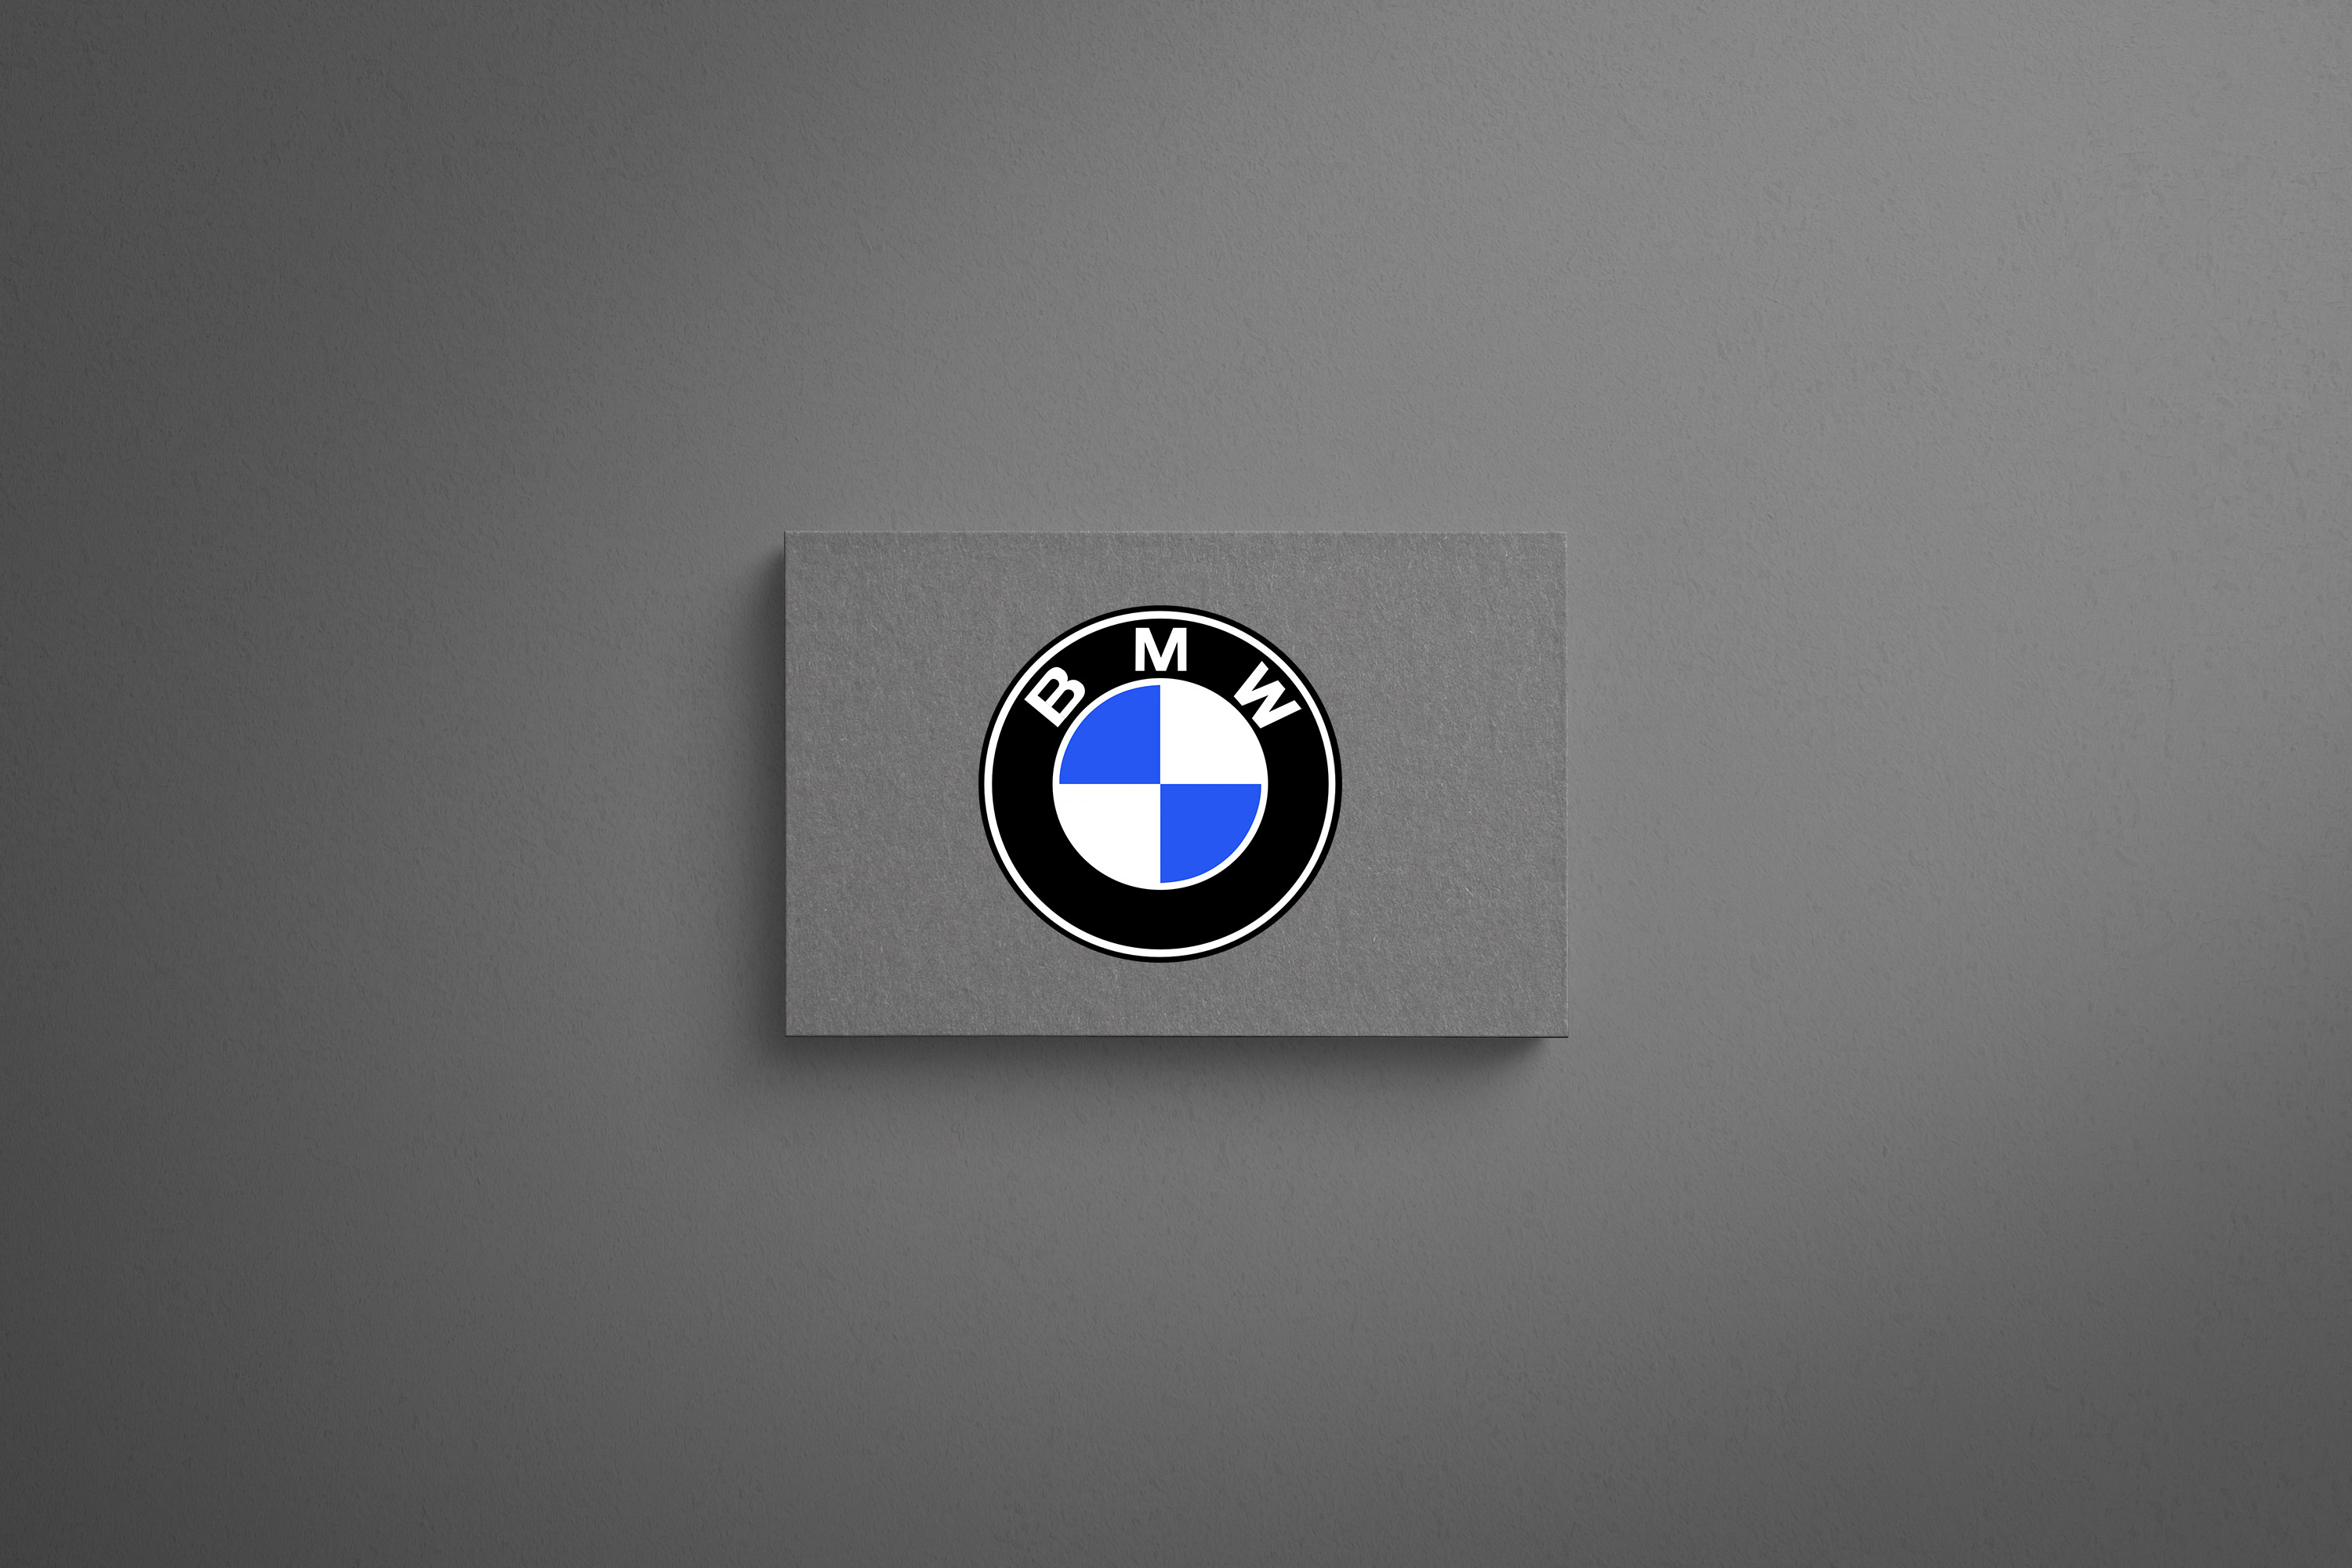 I will make a custom mockup for your logo and product